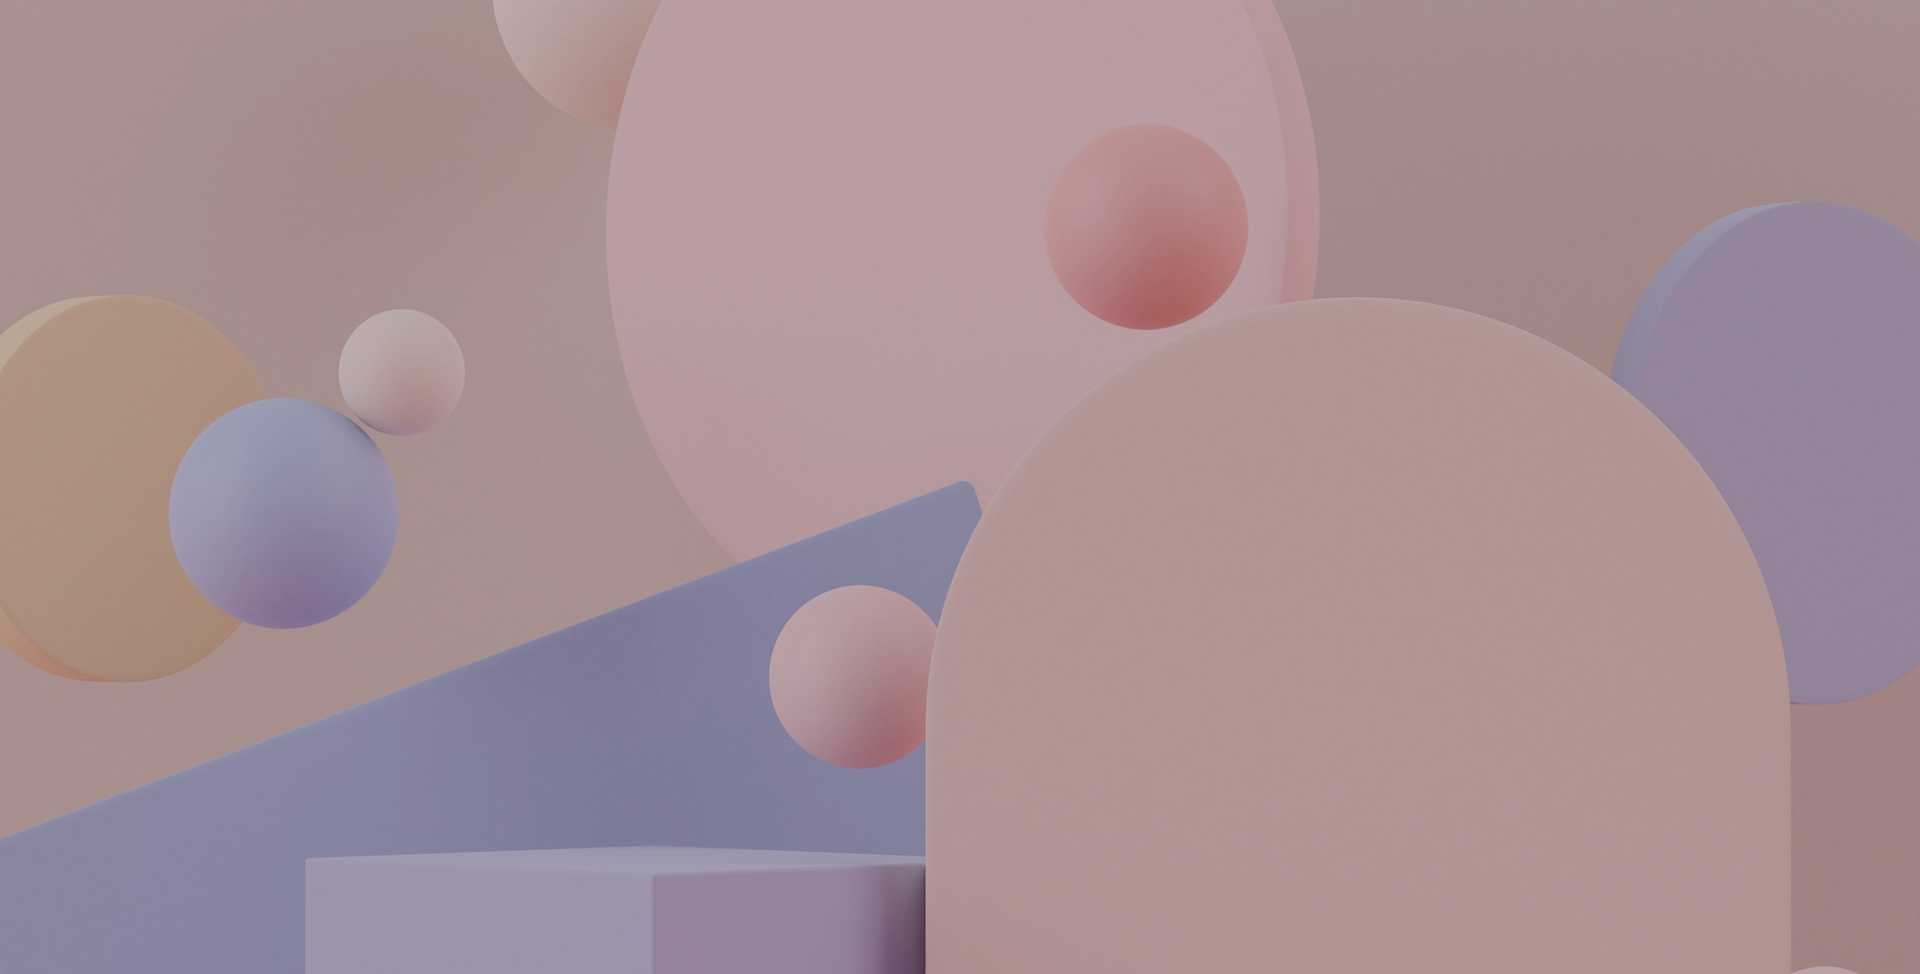 3D rendered image of various pastel pink and purple colored shapes against a beige background